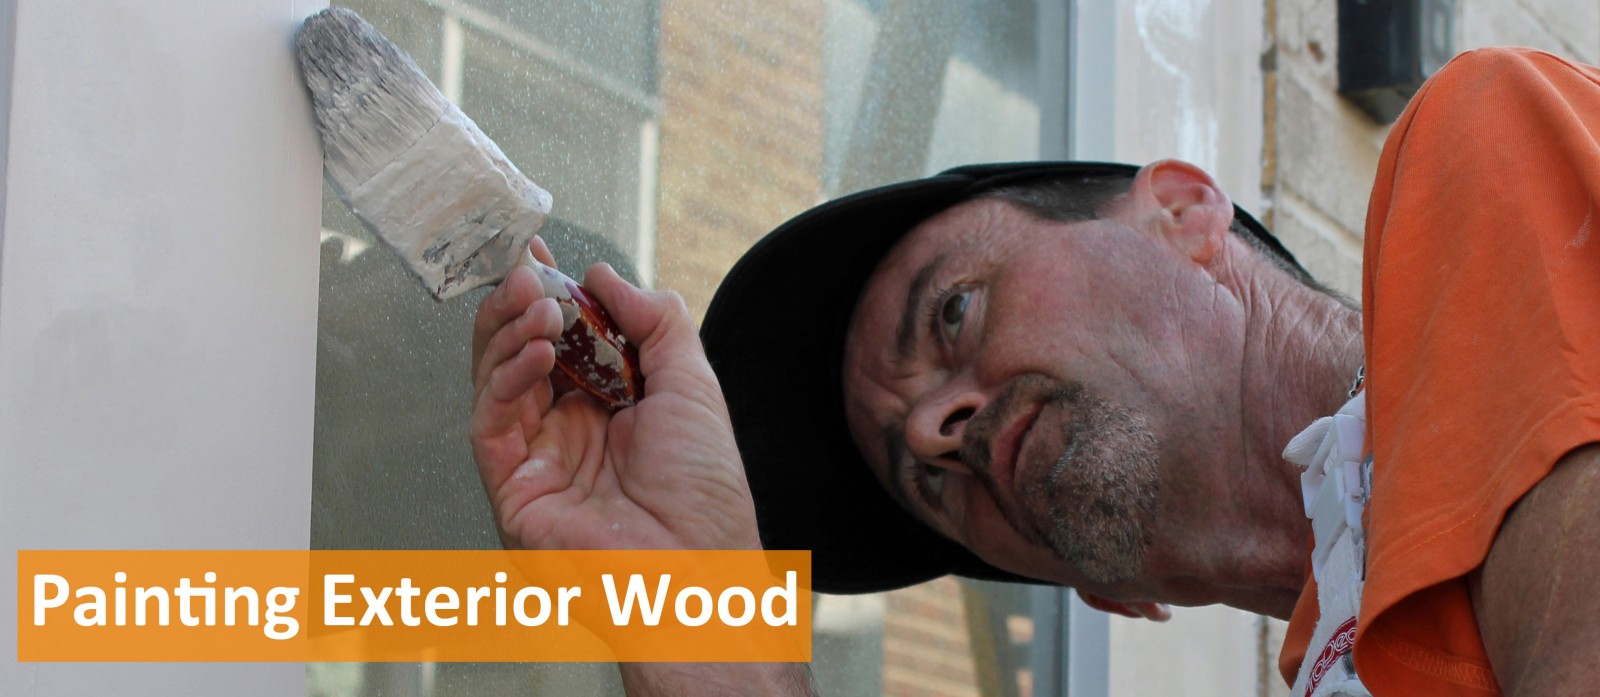 Painting exterior wood